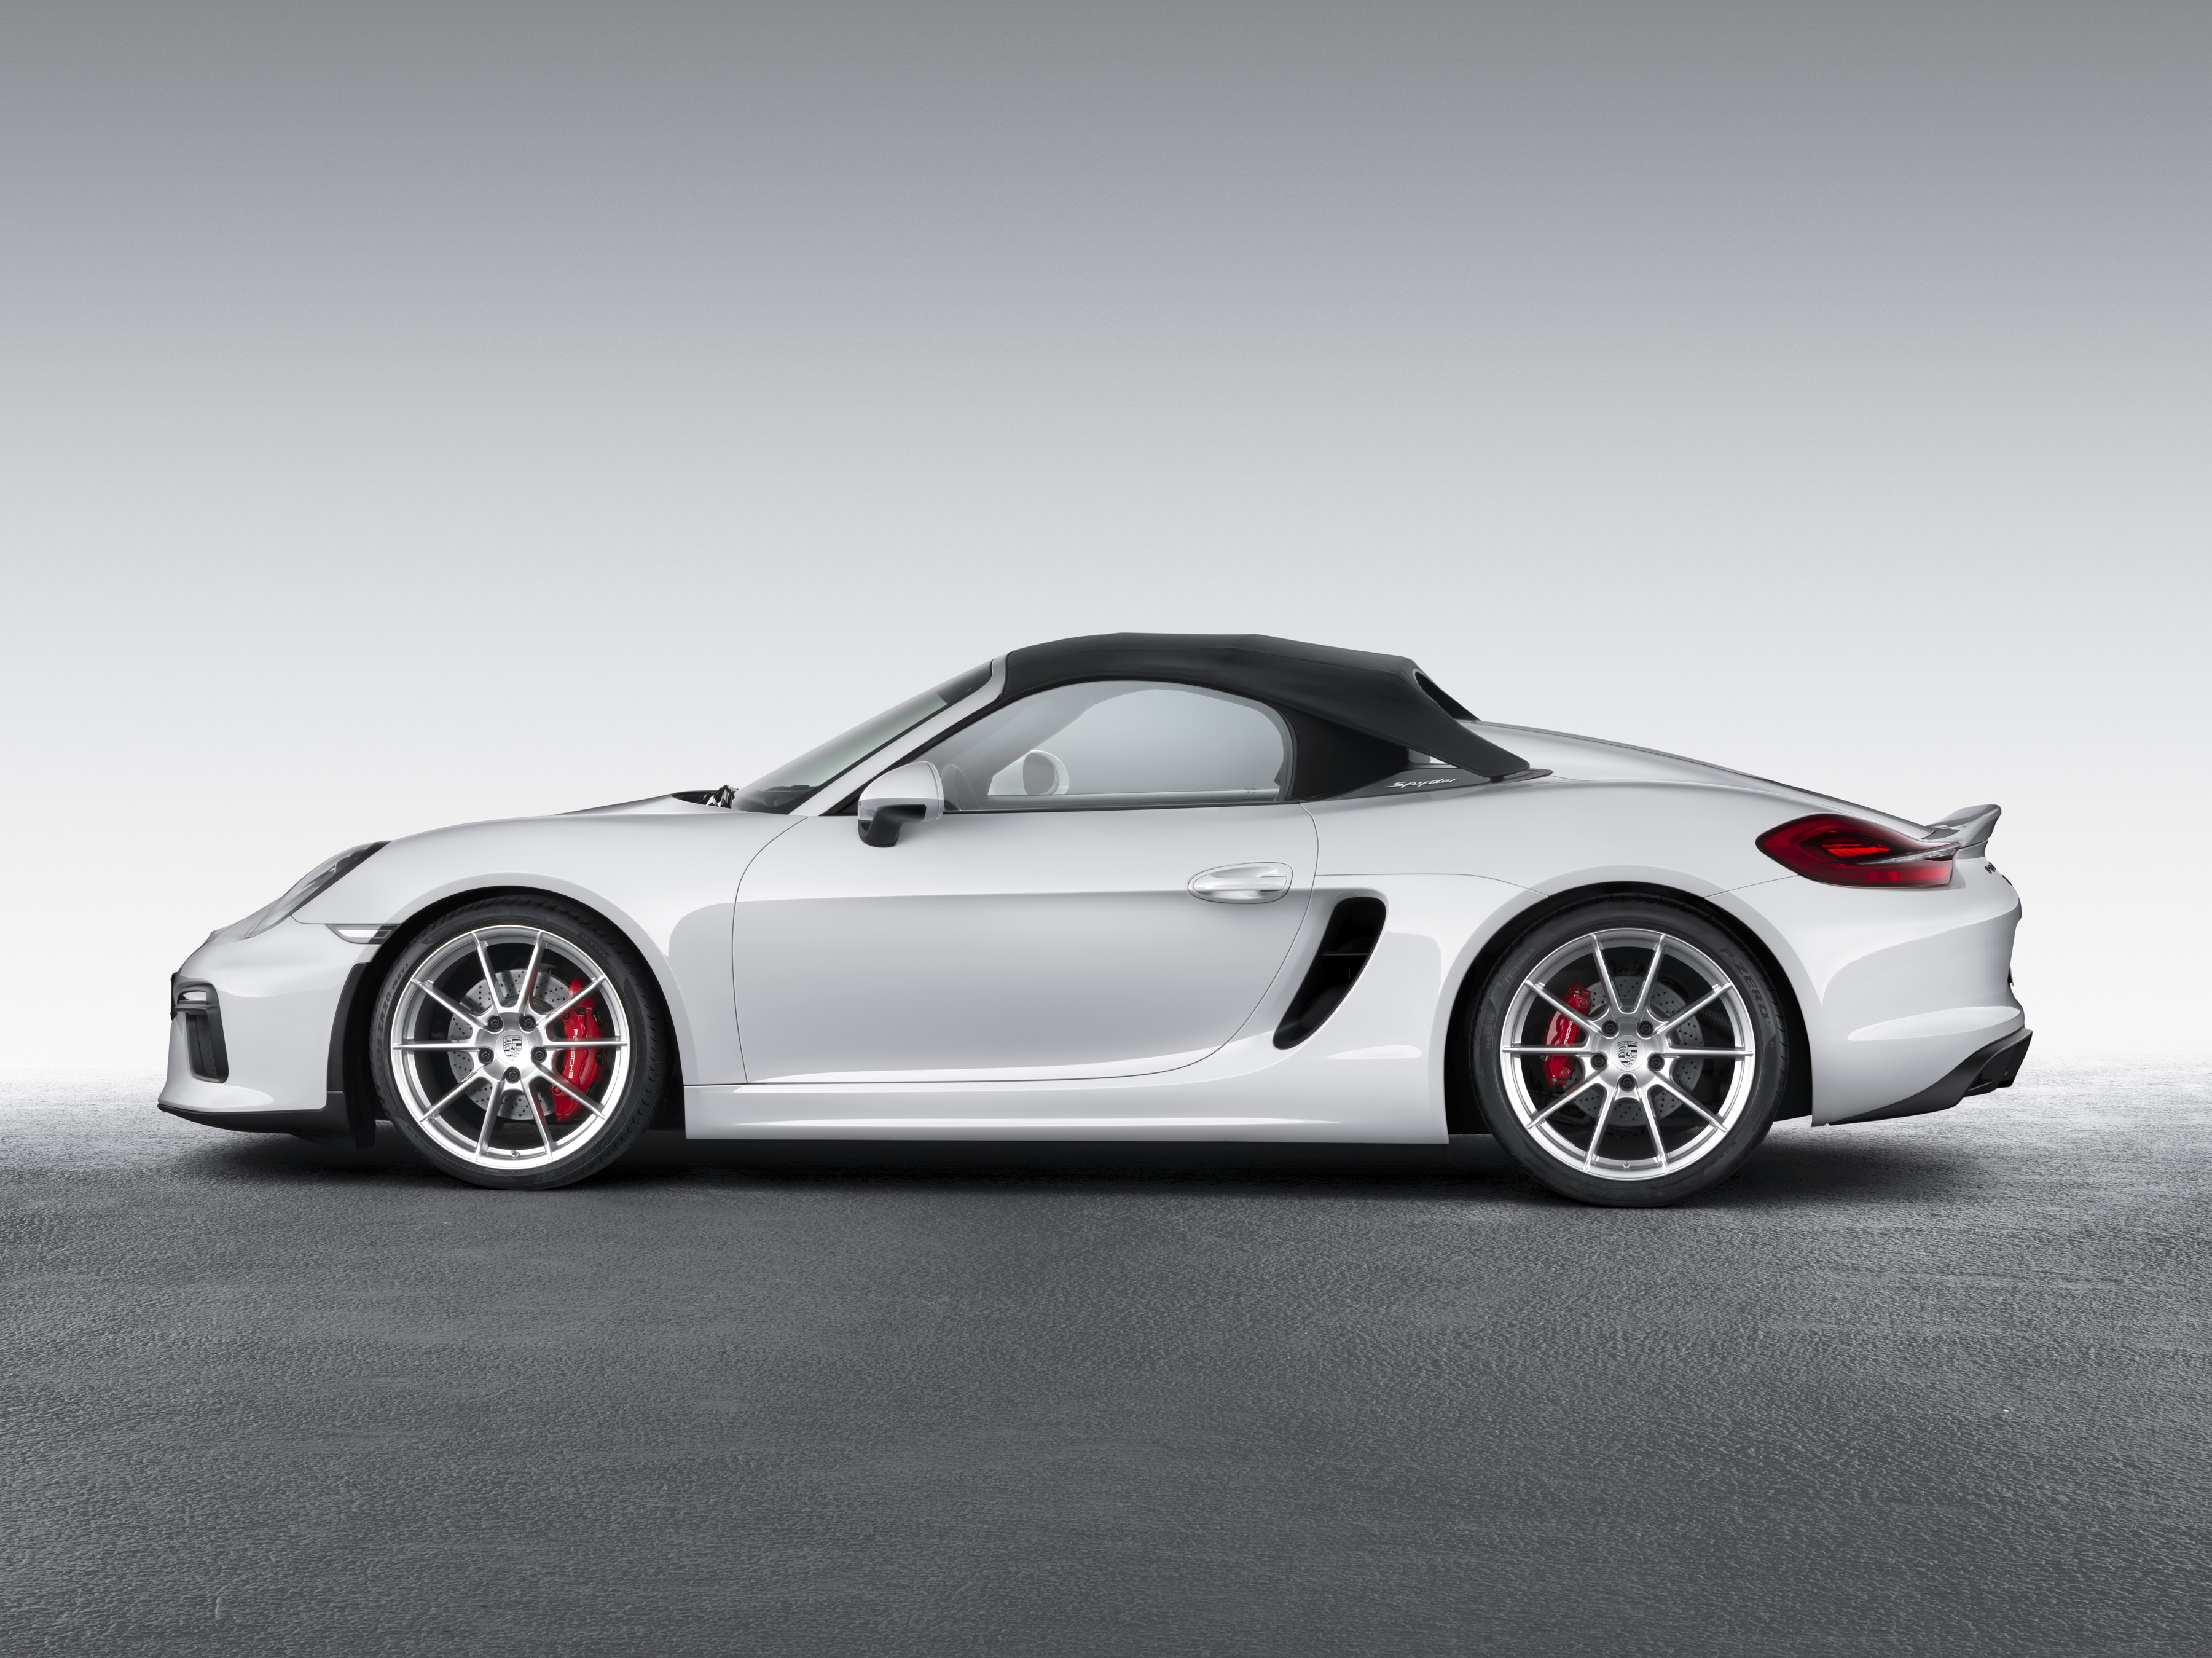 Porsche 2016 Boxster Spyder - profil / side face - close